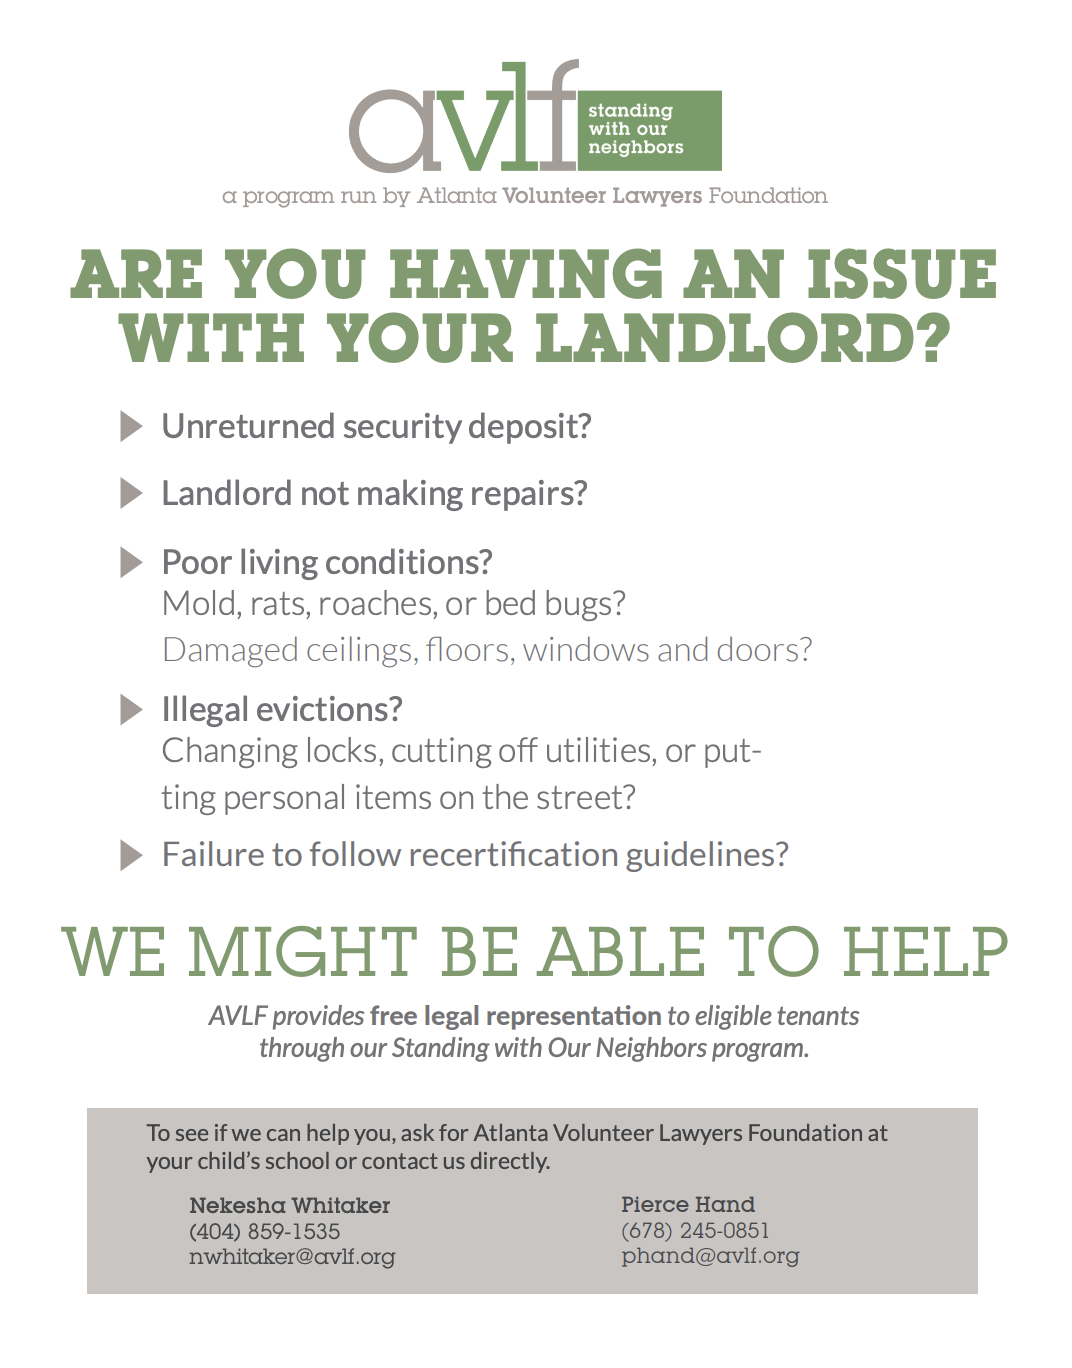 Are You Having Issues With Your Landlord?